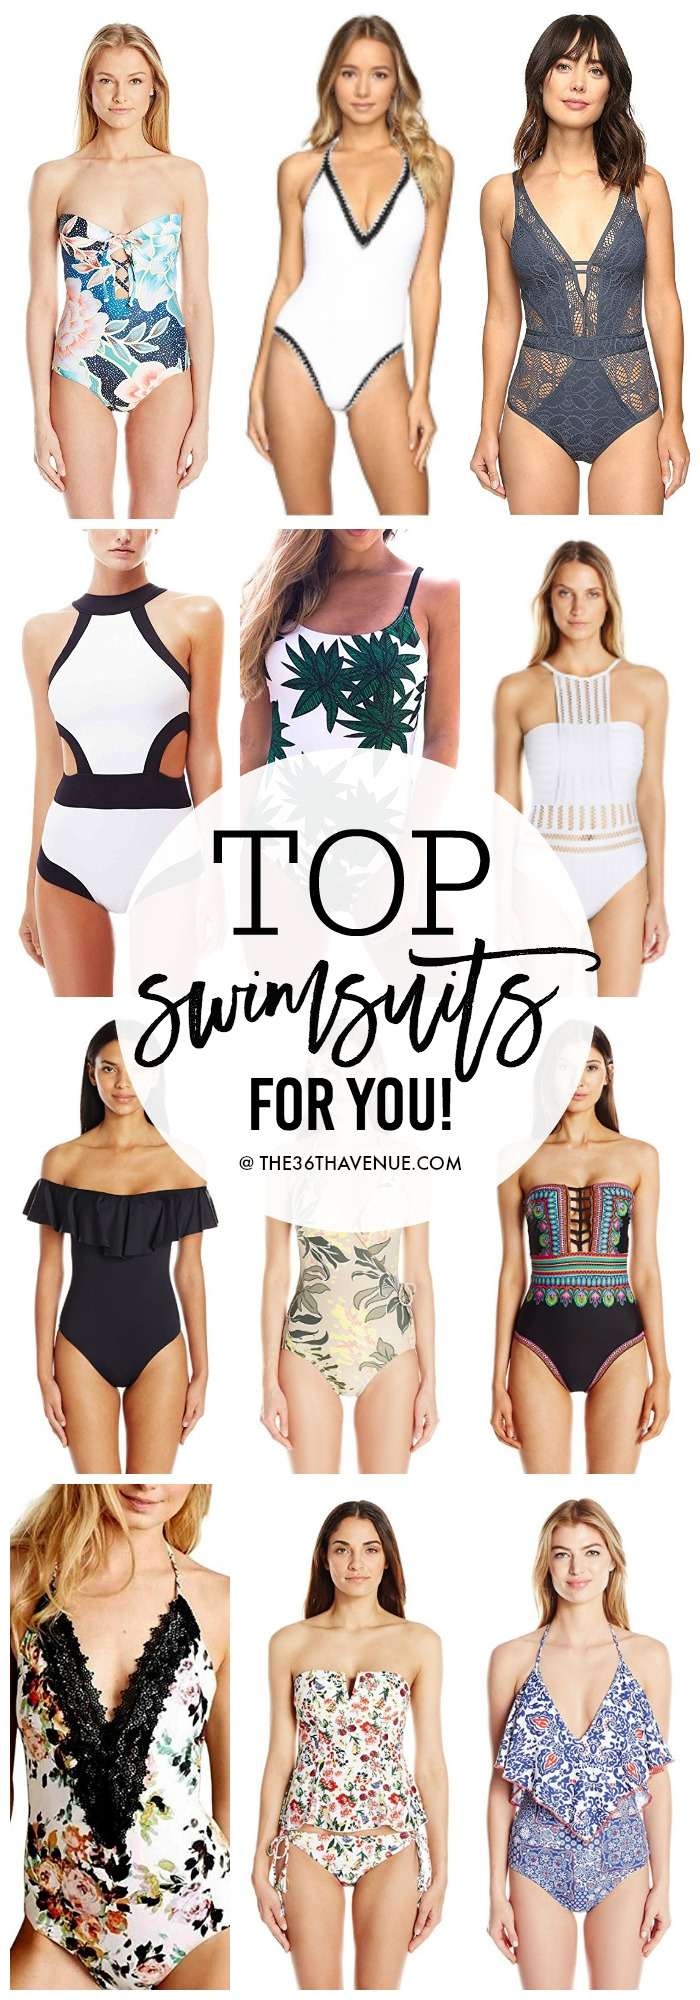 Swimsuits -Tankinis - Bandinis. Loving these trendy  swimsuits and beautifully designed swimwear with modern lines and awesome prints.